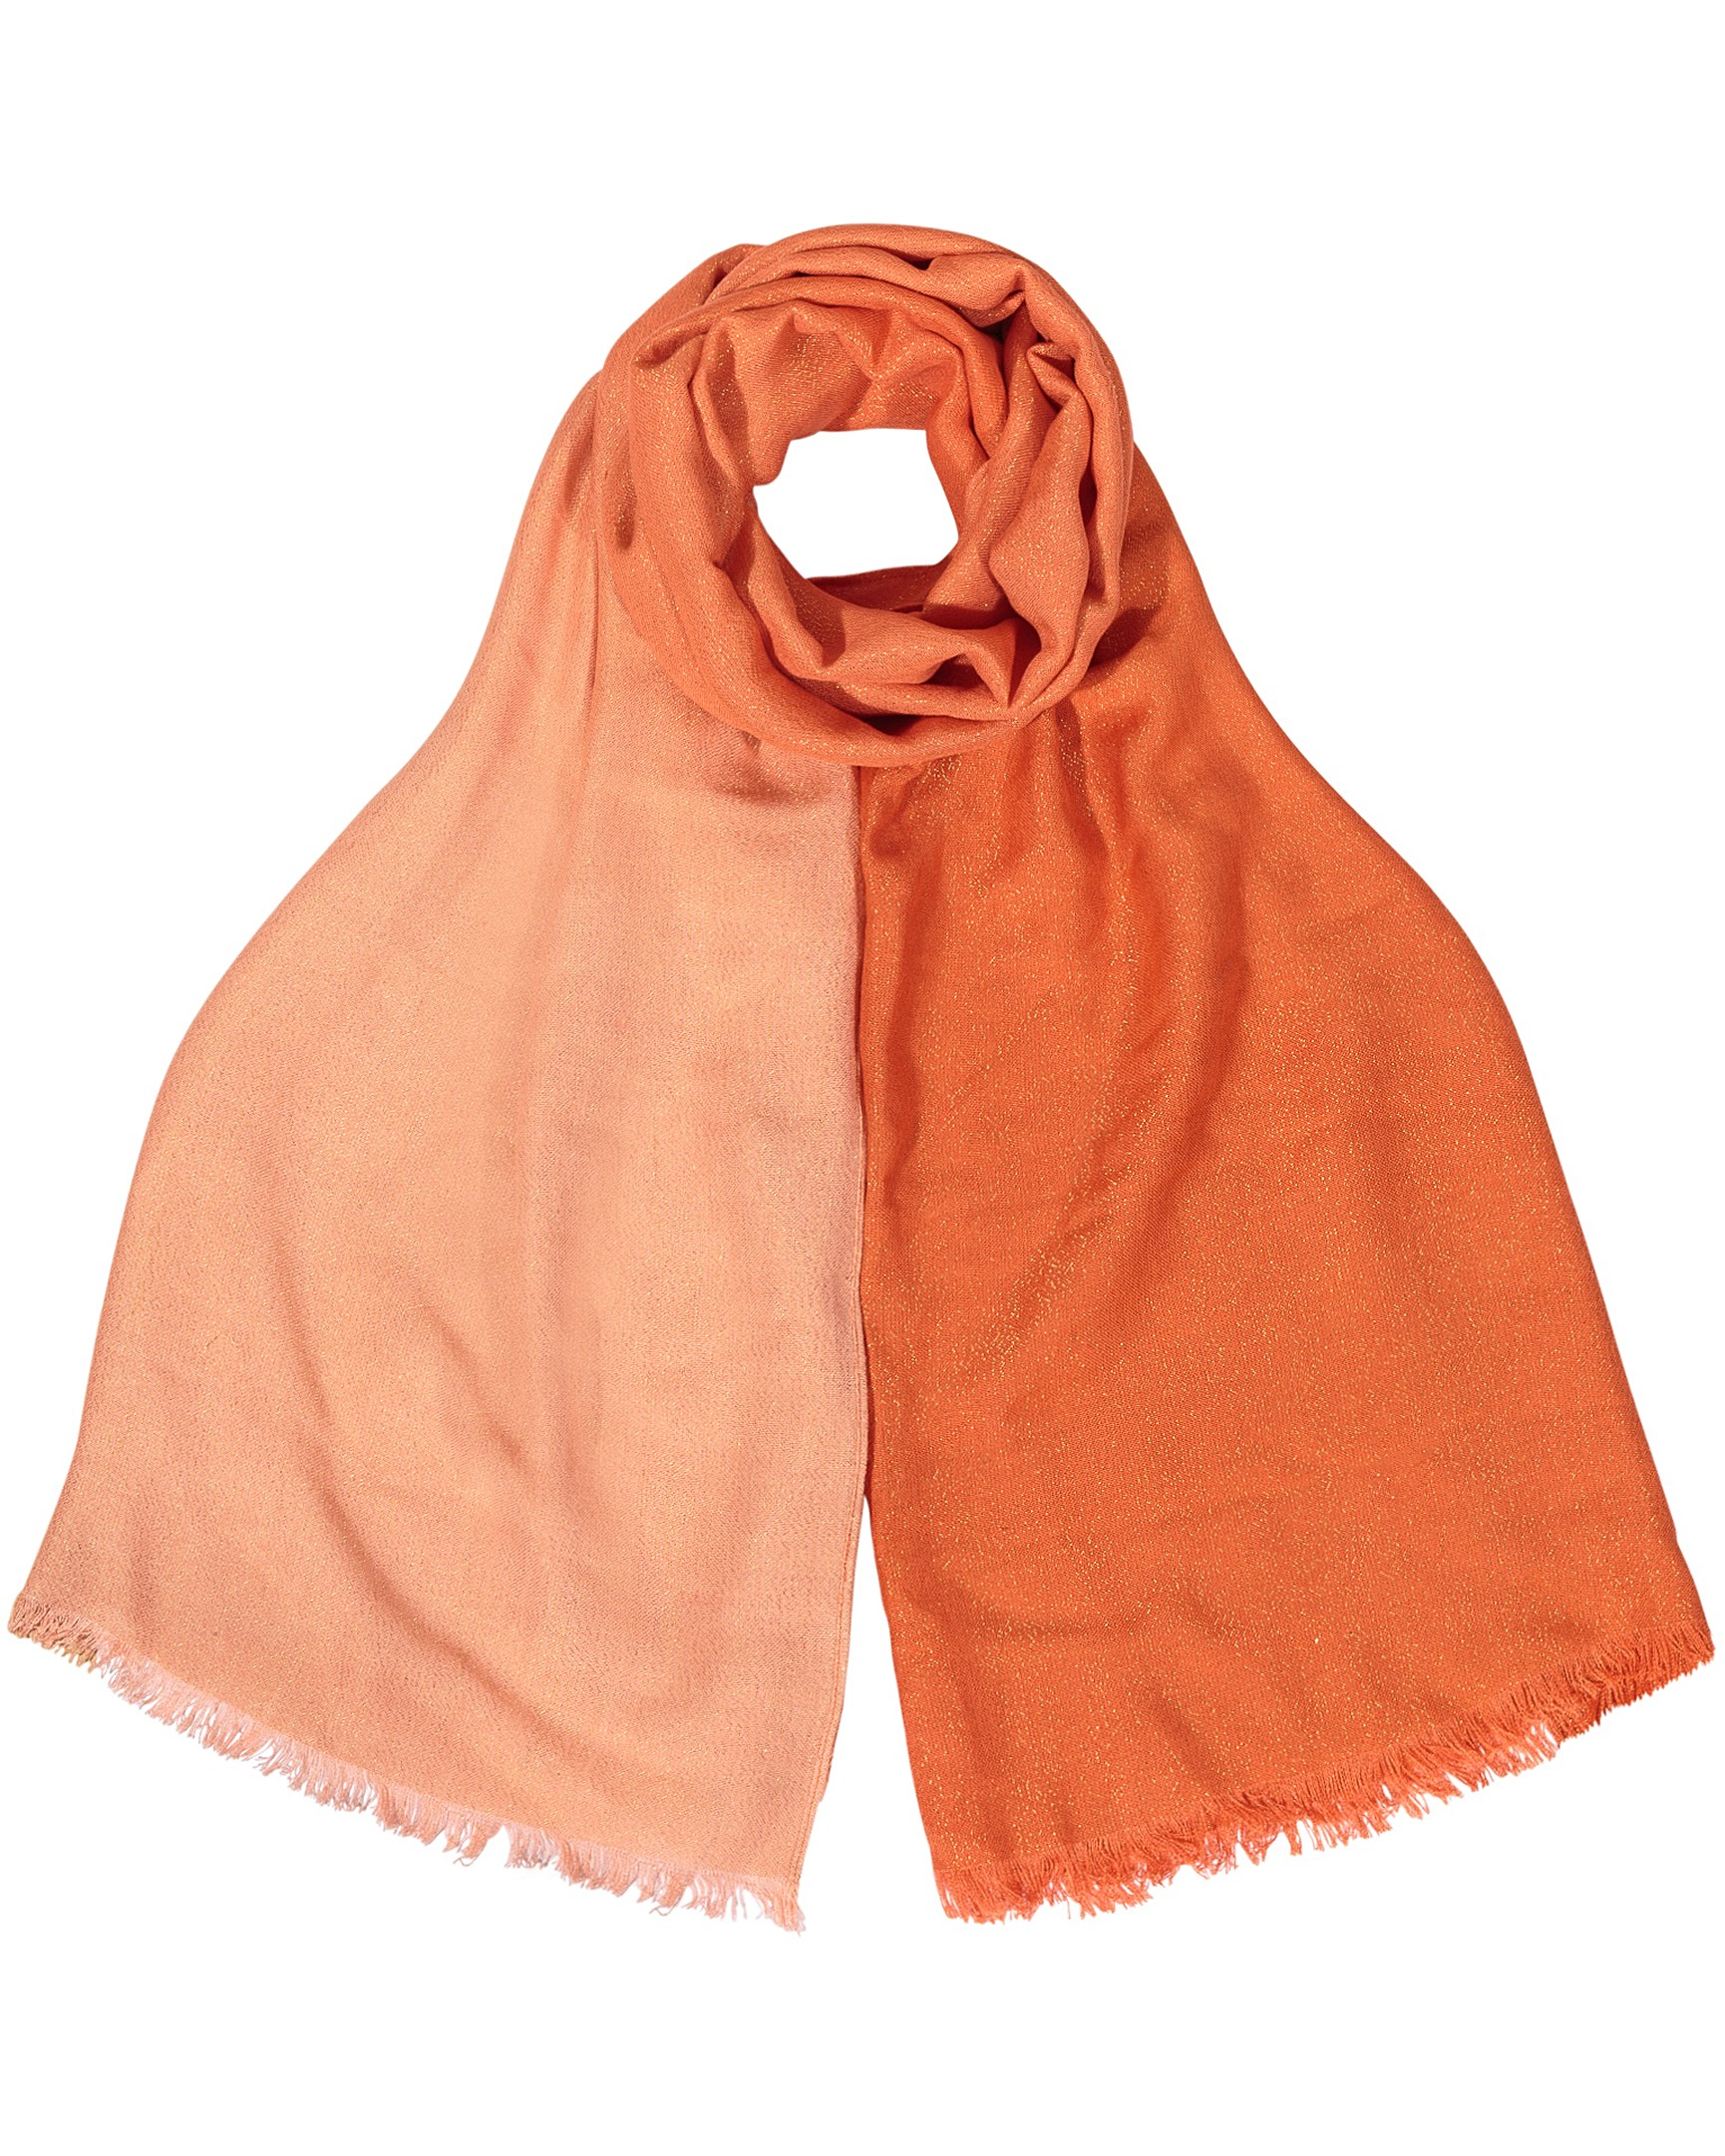 6a93eeb2189f6 Scarves for Women | Ladies Lightweight & Knitted Scarves | Oliver Bonas